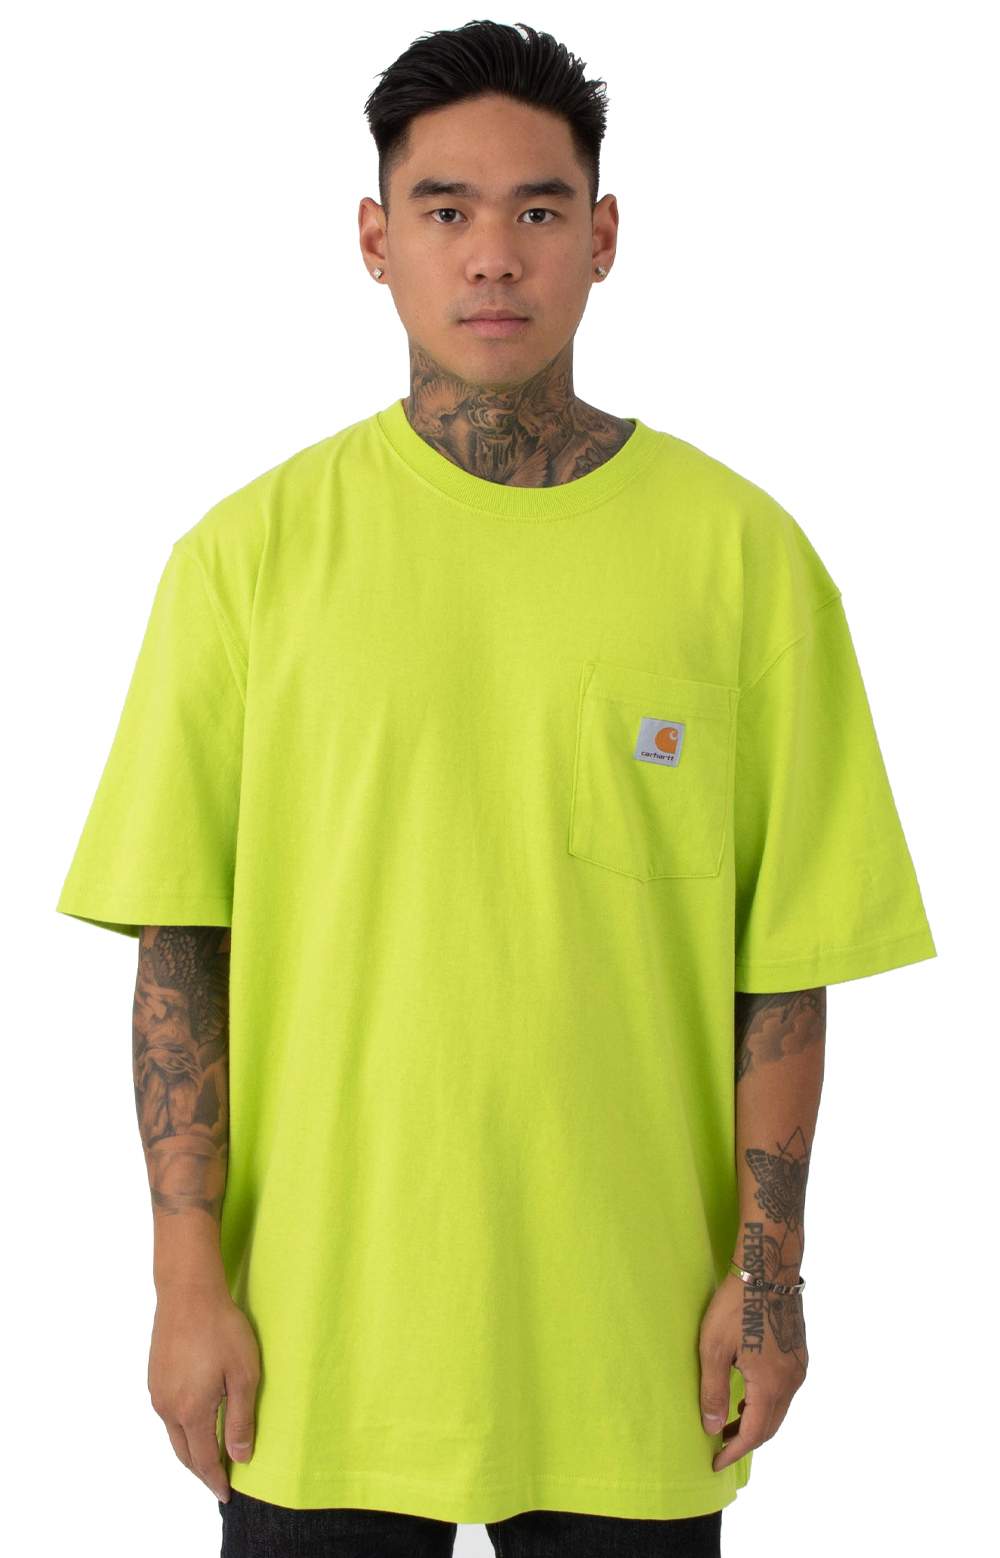 (K87) Workwear Pocket T-Shirt - Sour Apple